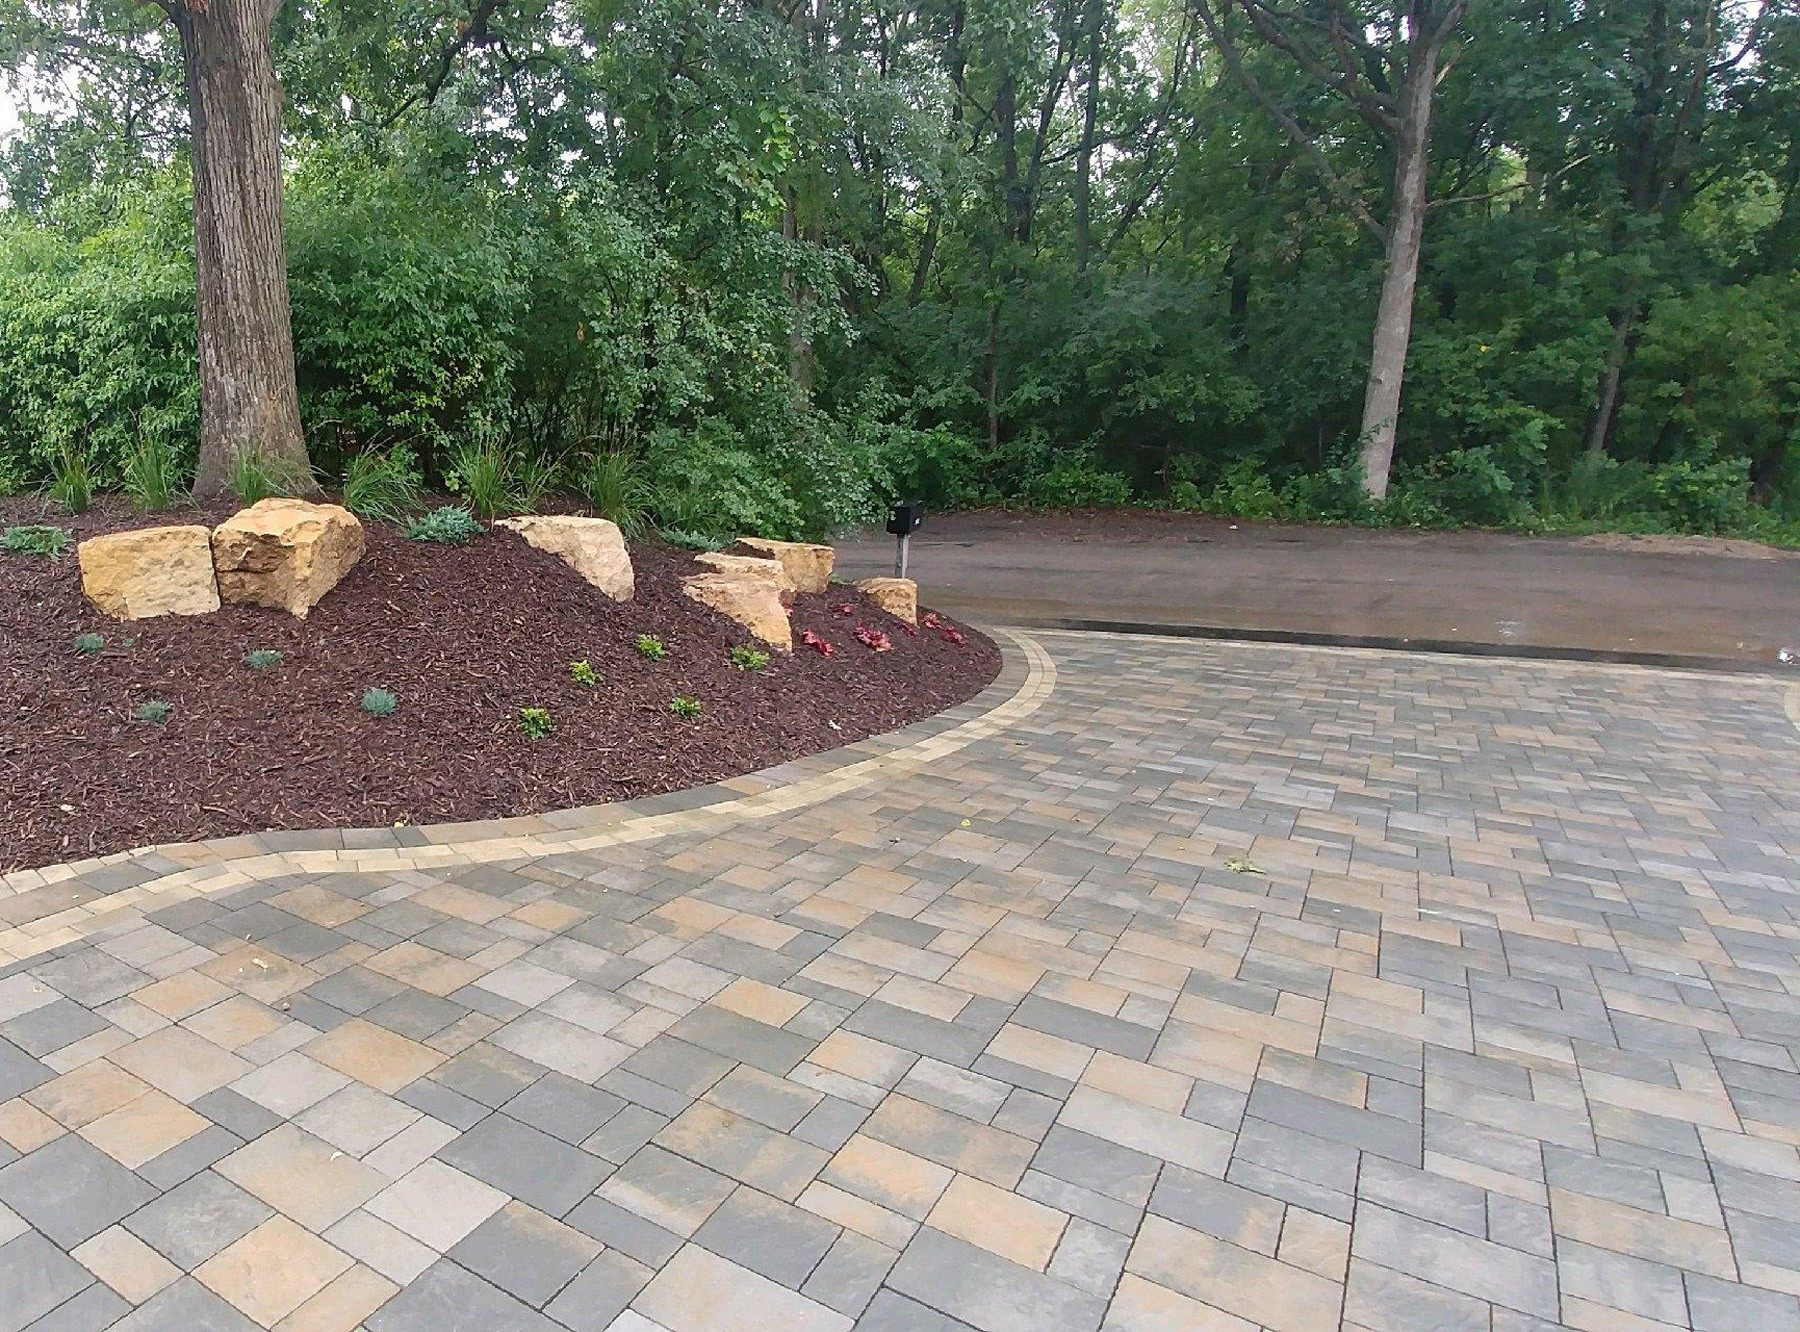 Photo of Willow Creek Paving Stones Hardscaping